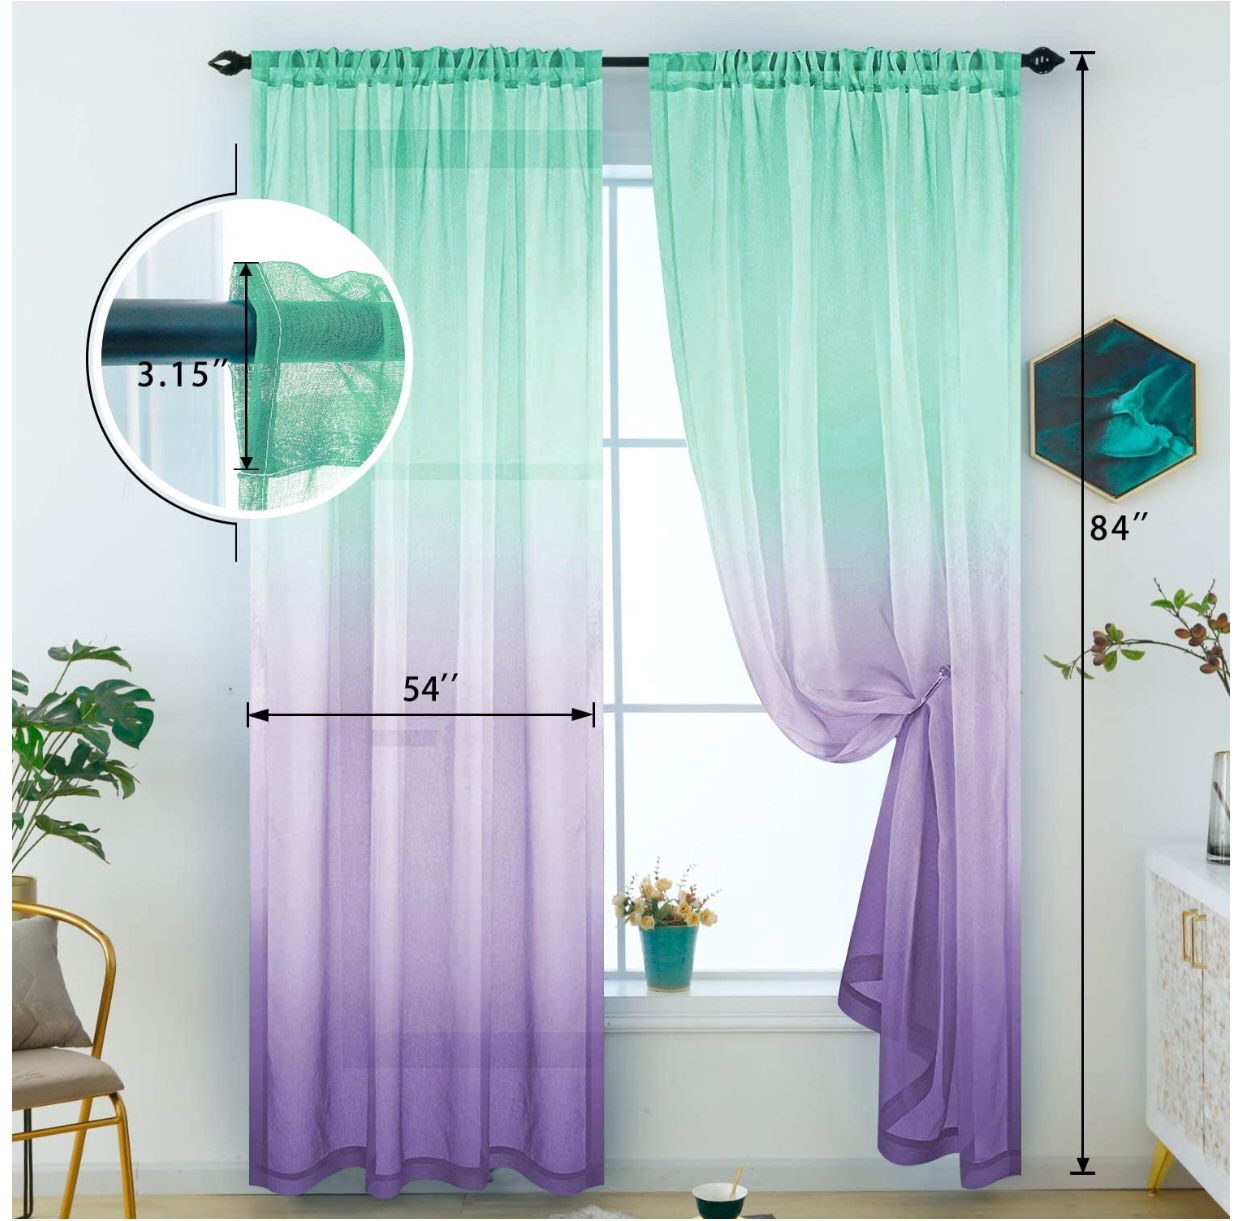 Sheer Curtains Mermaid Decor Reversible Lilac and Turquoise Voile Reversible Panels 100% Polyester Faux Linen